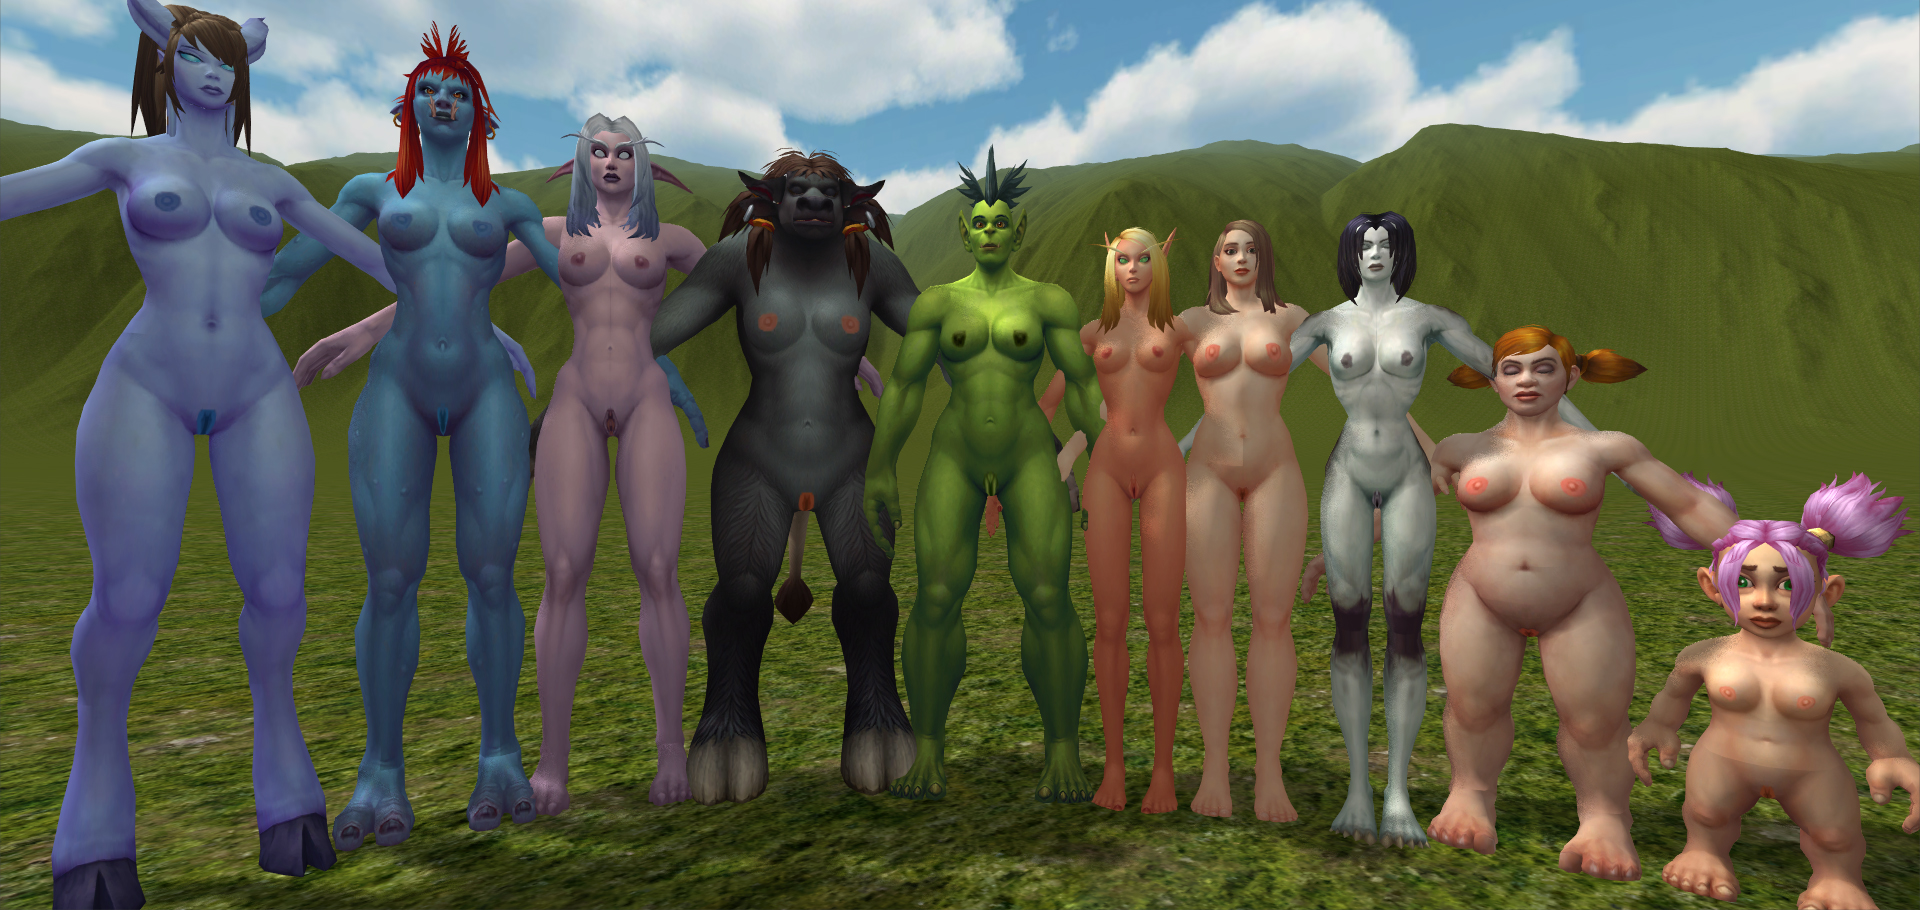 Warcraft 3 porn mod nude videos